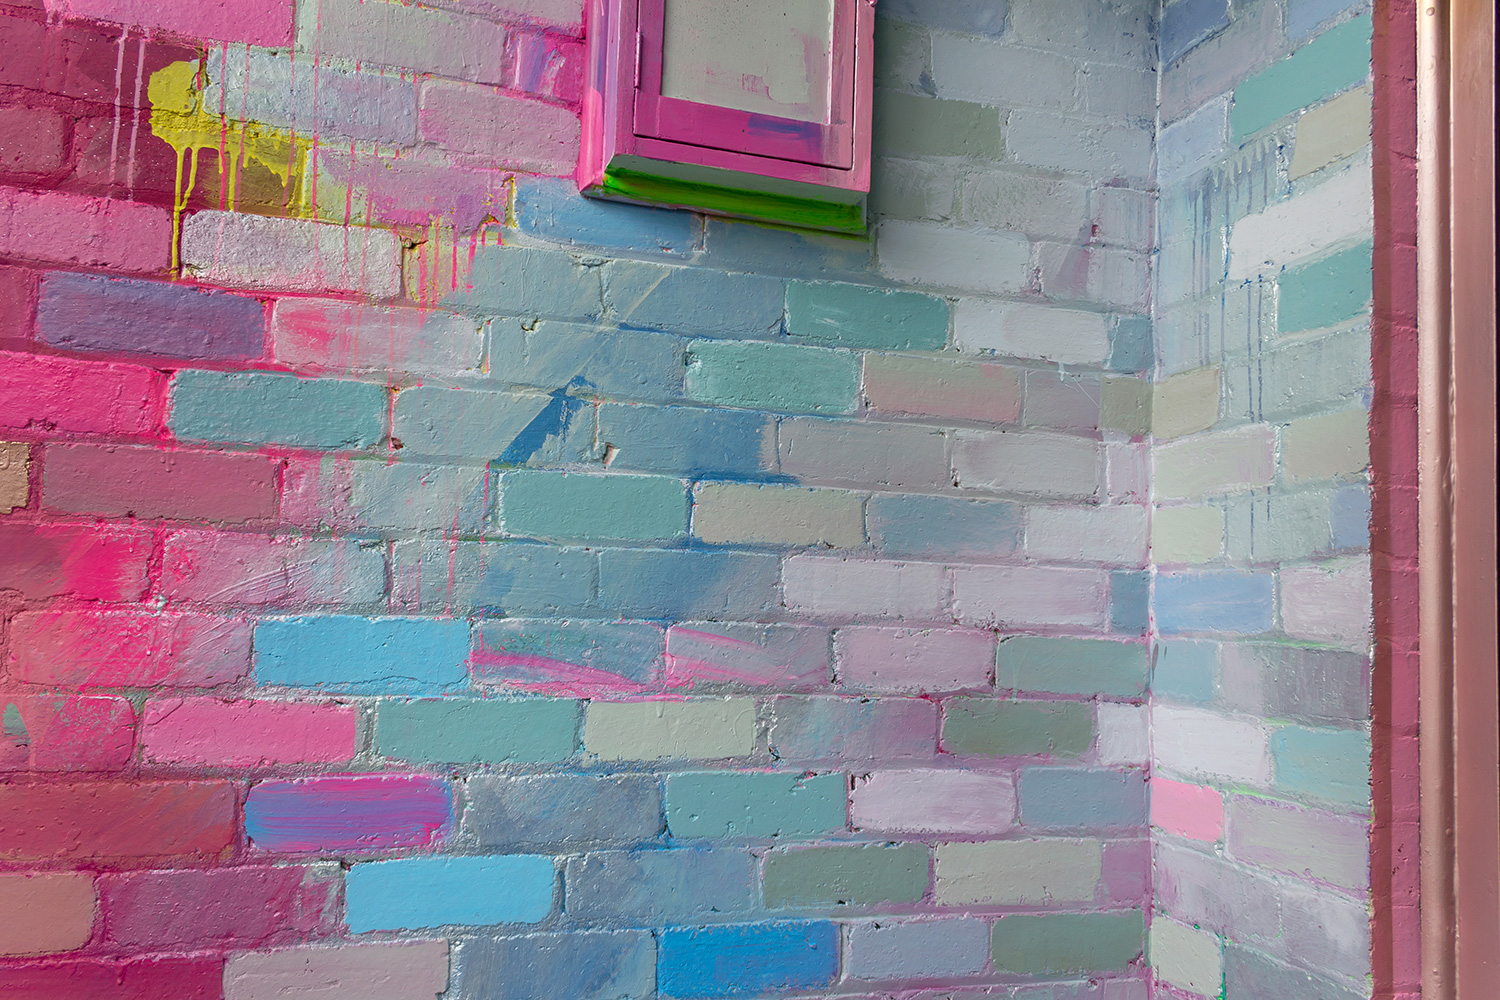 Close up wall detail of abstract mural, showing pink and blue bricks.